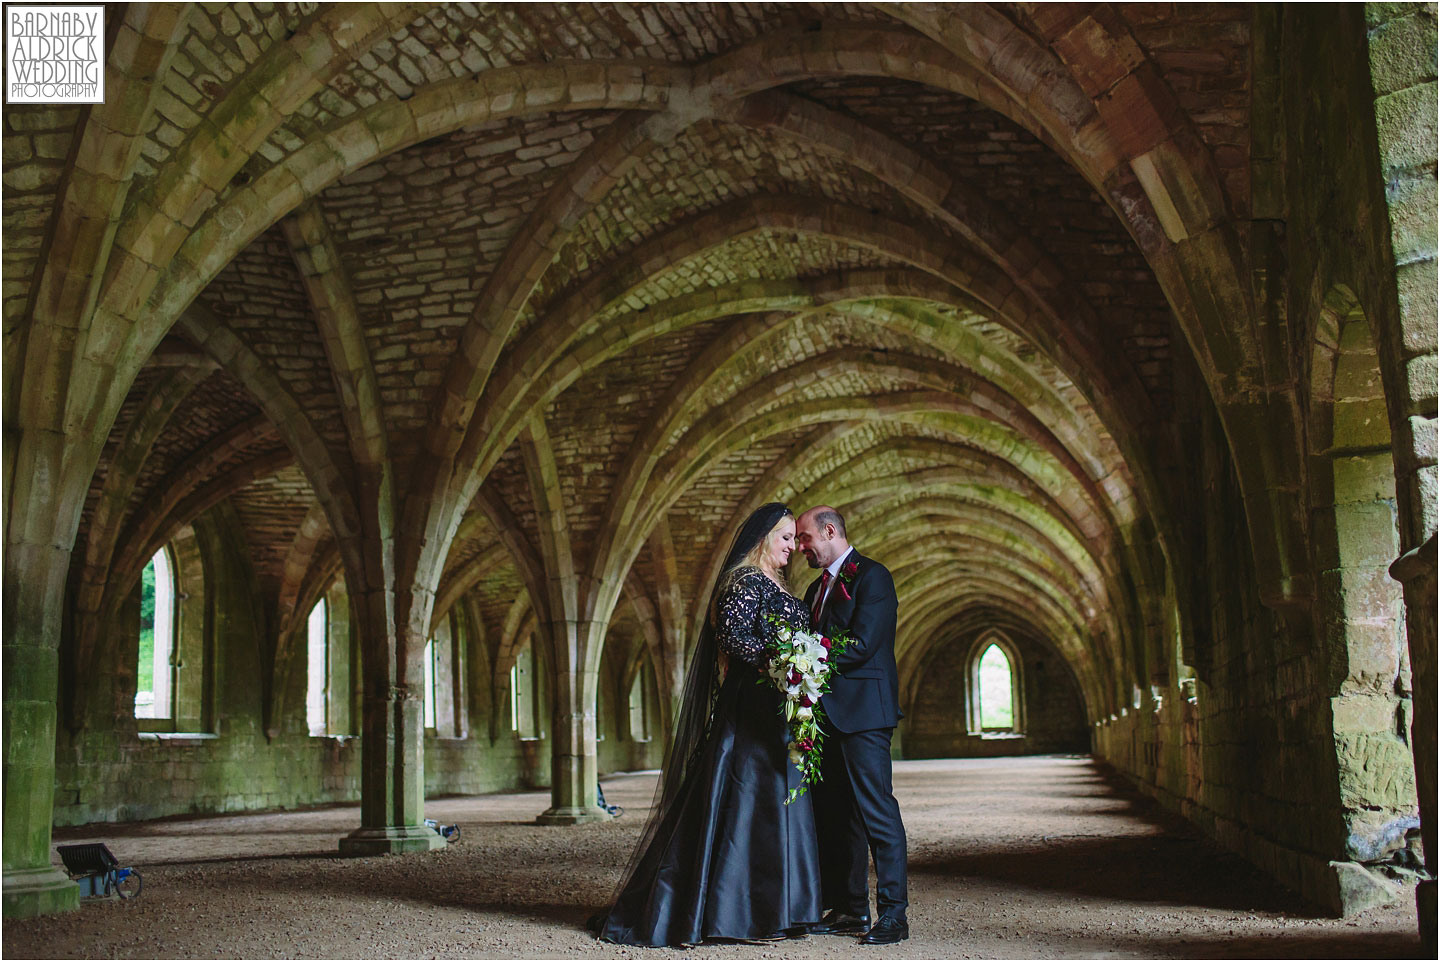 A wedding portrait photo in the cellarium of The National Trust's Fountains Abbey